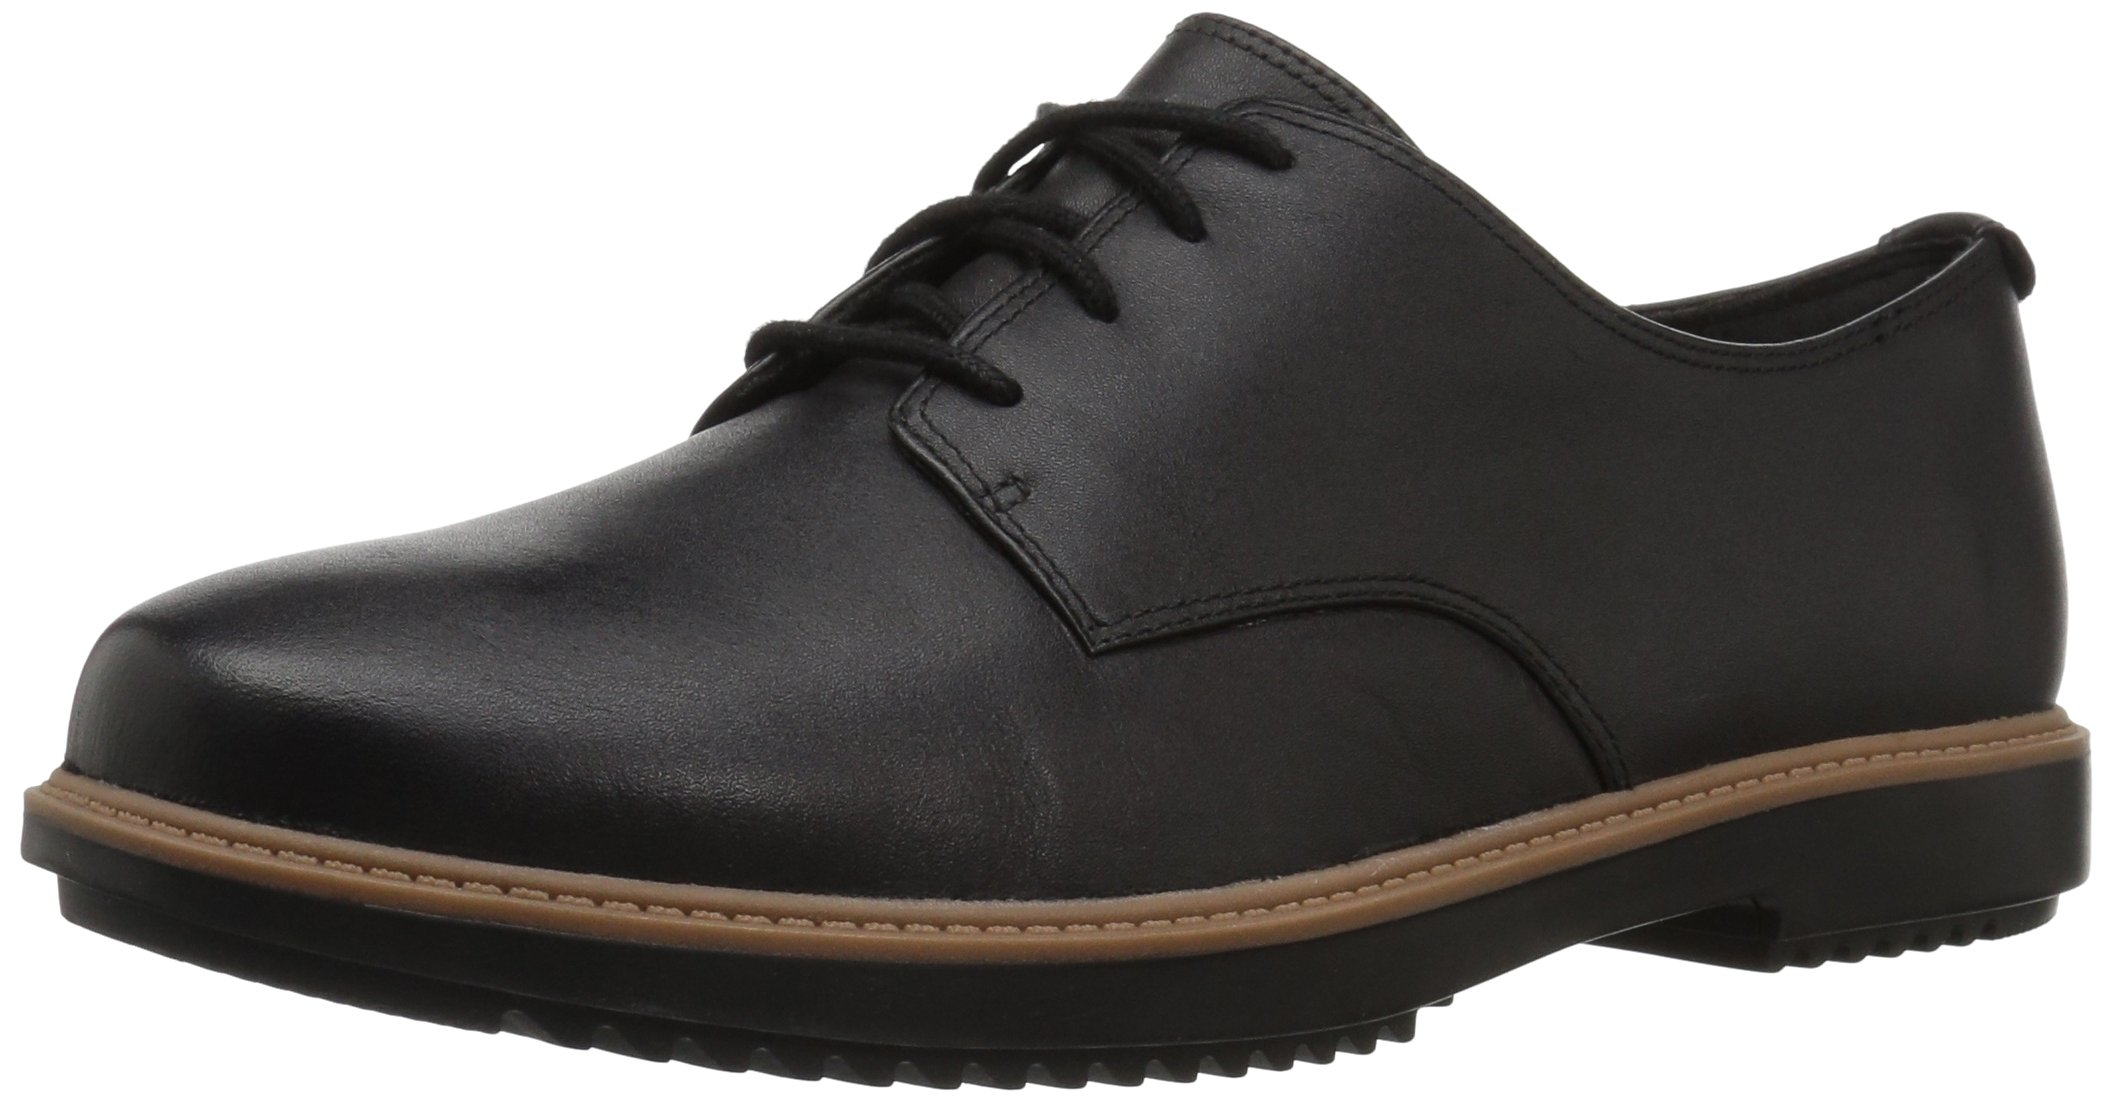 CLARKS Women's Raisie Bloom Oxford, Black Leather, 8 M US